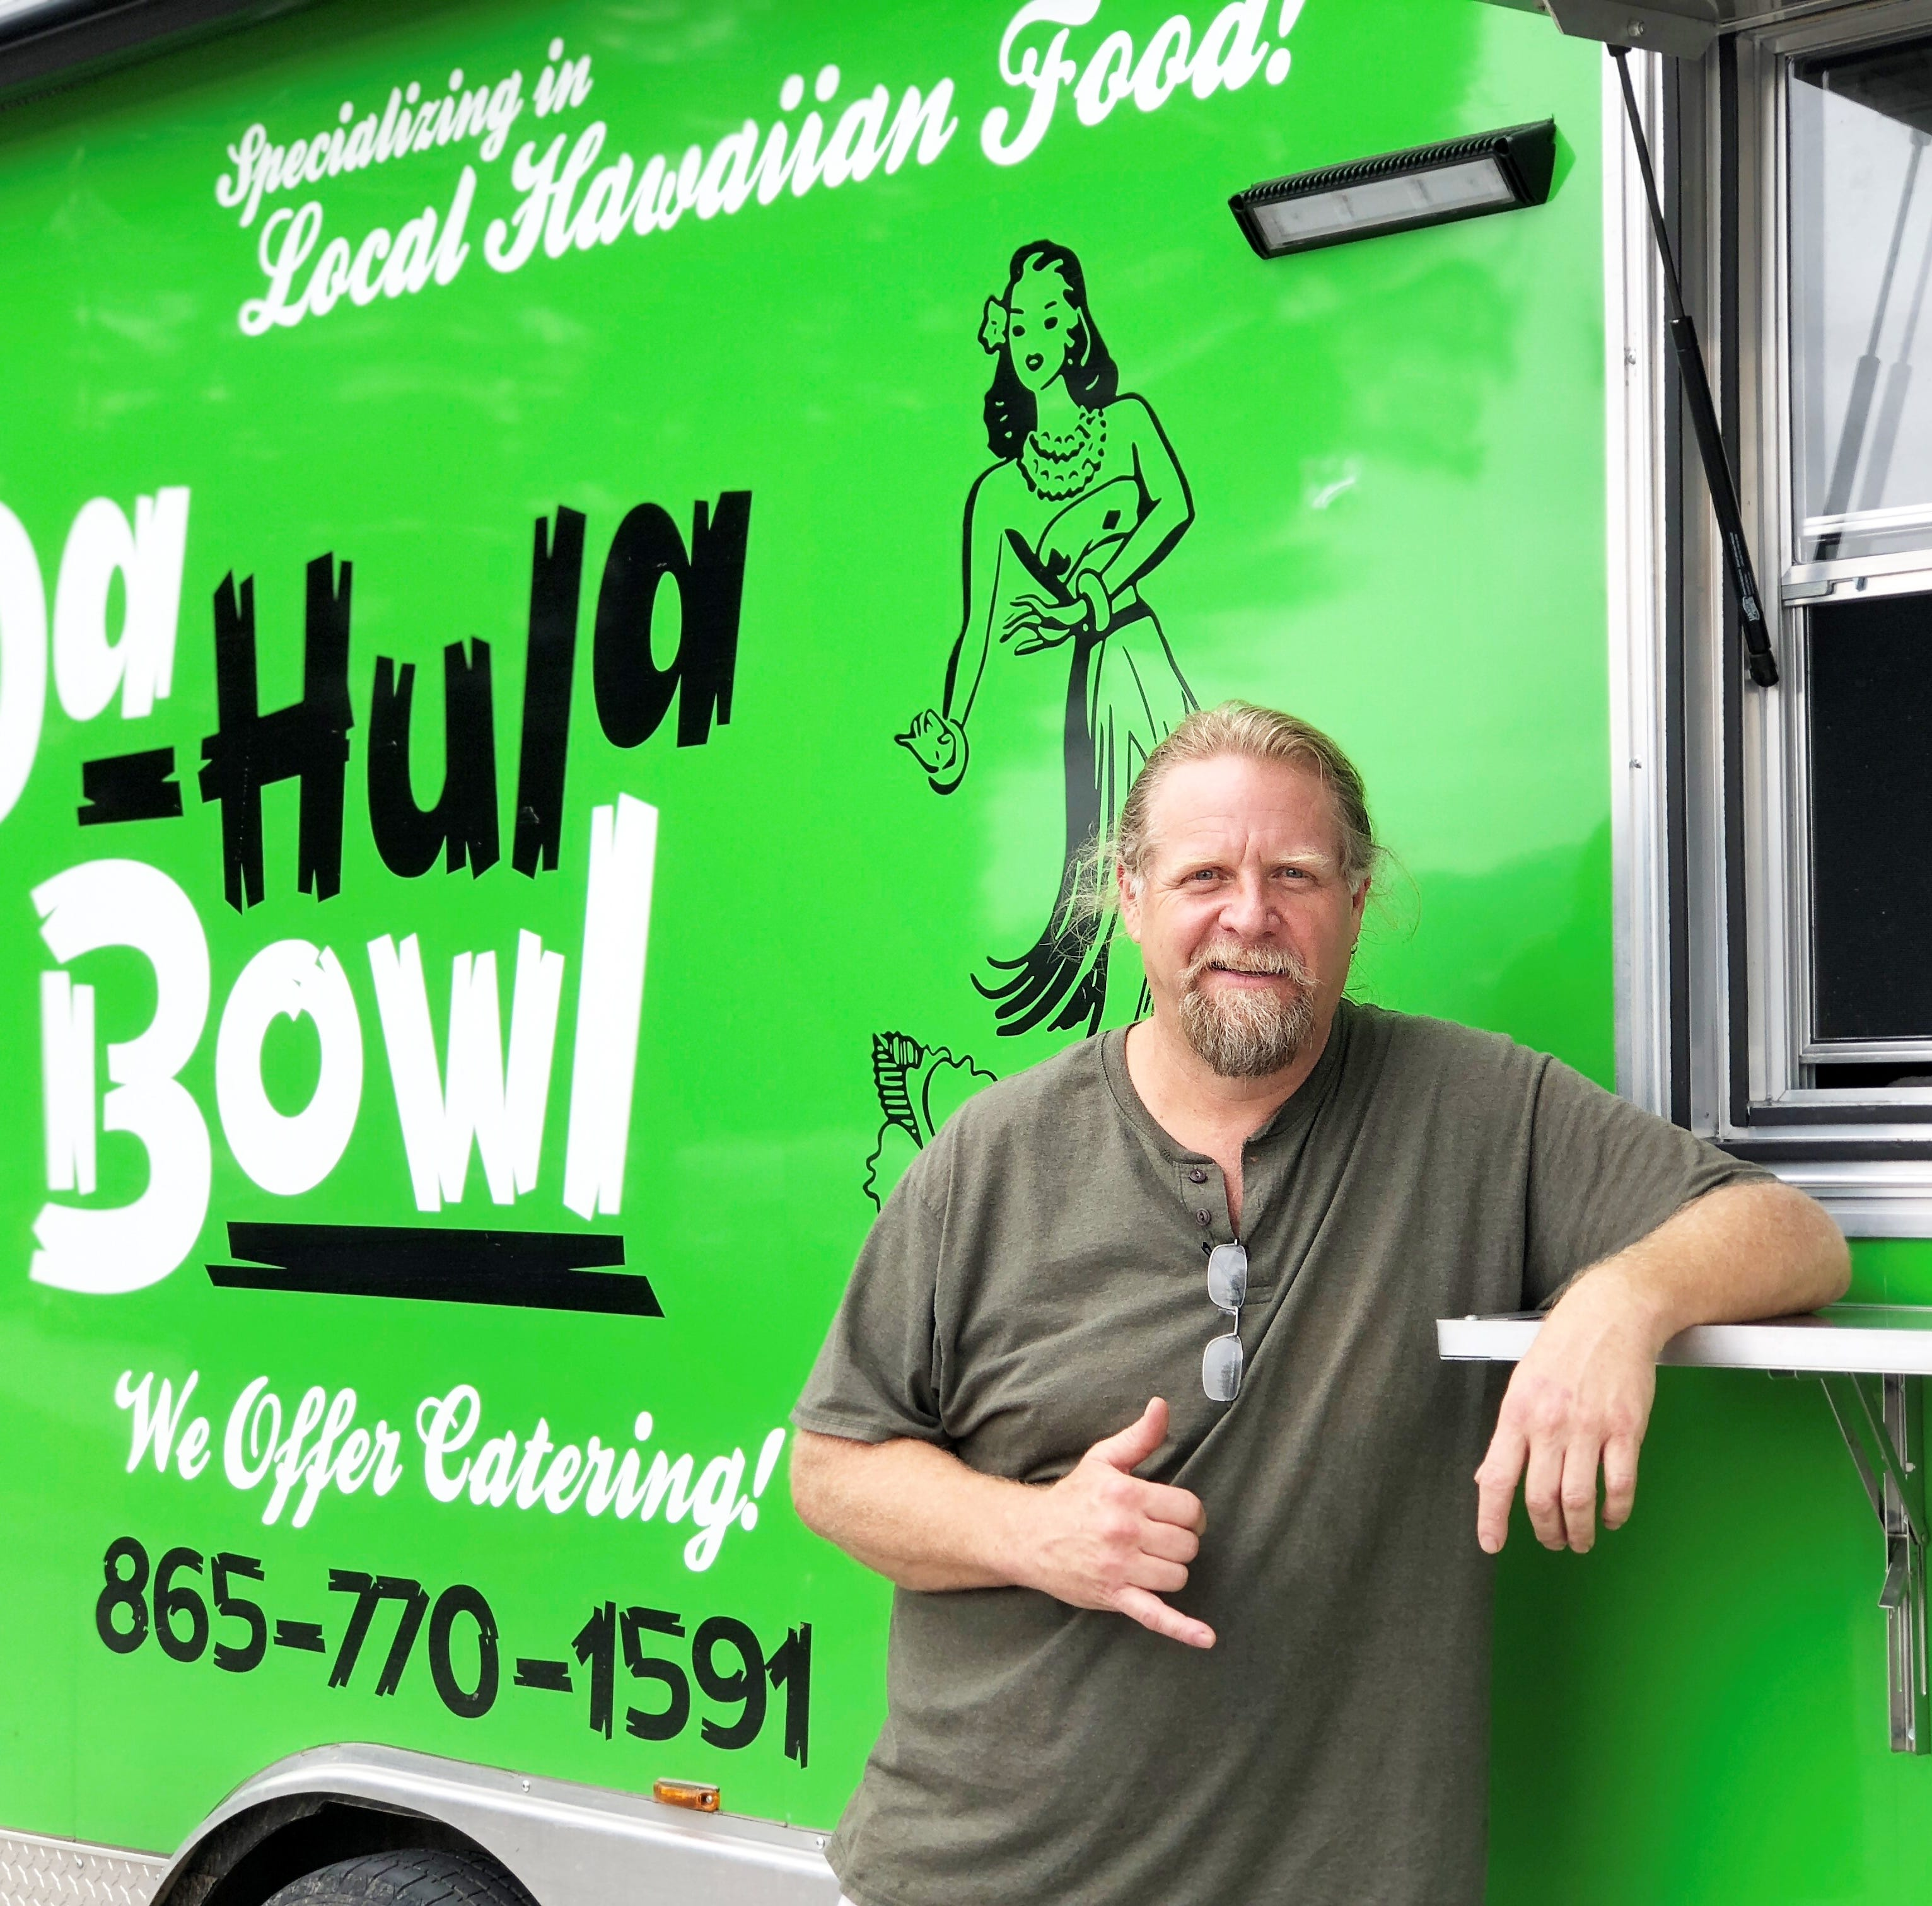 Da Hula Bowl serves up Hawaiian flavors fit for a traditional luau